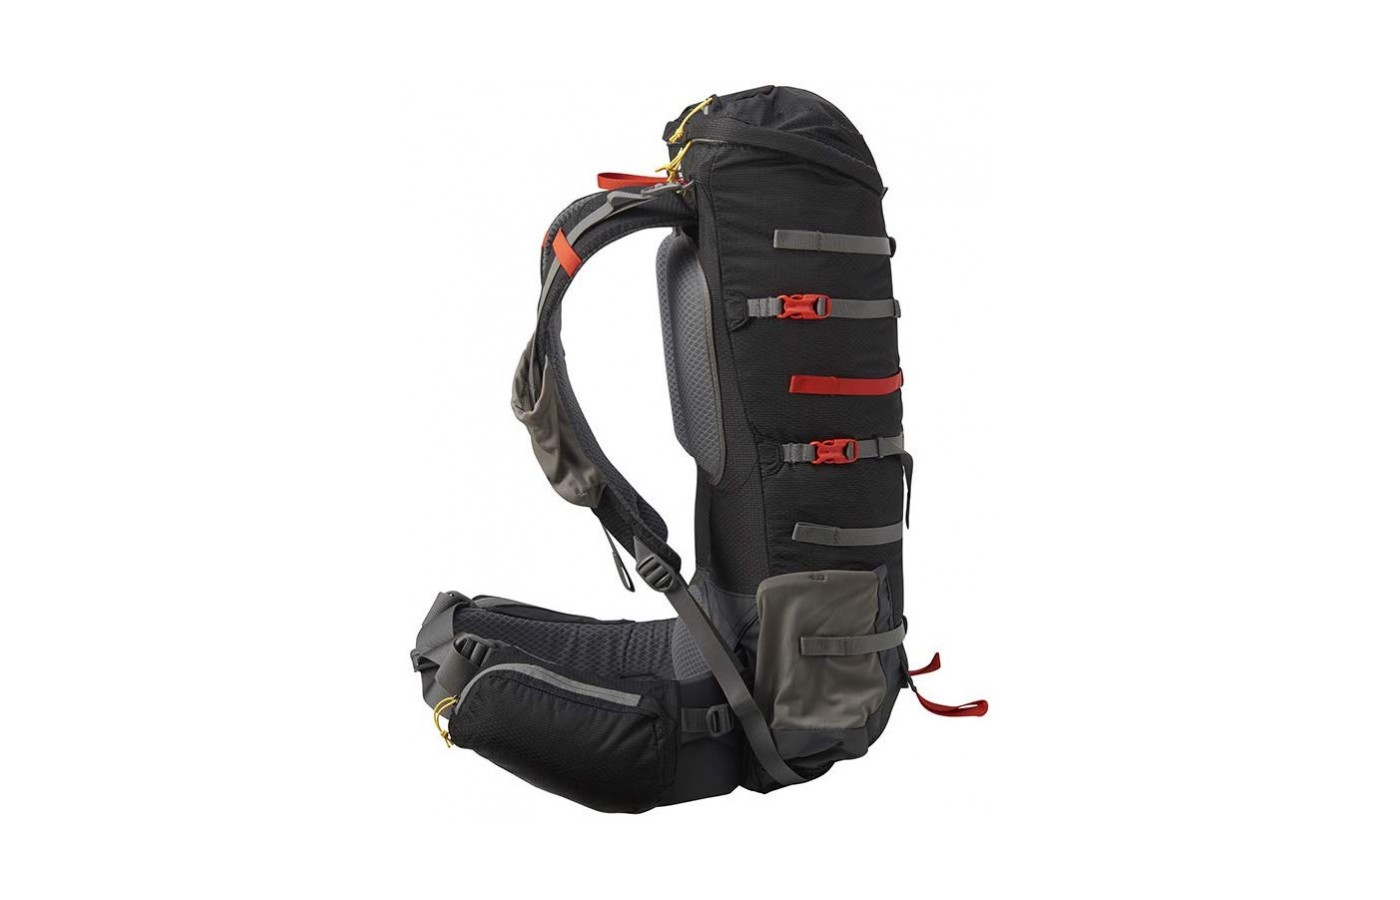 With the straps this pack continues to look stylishly appealing.